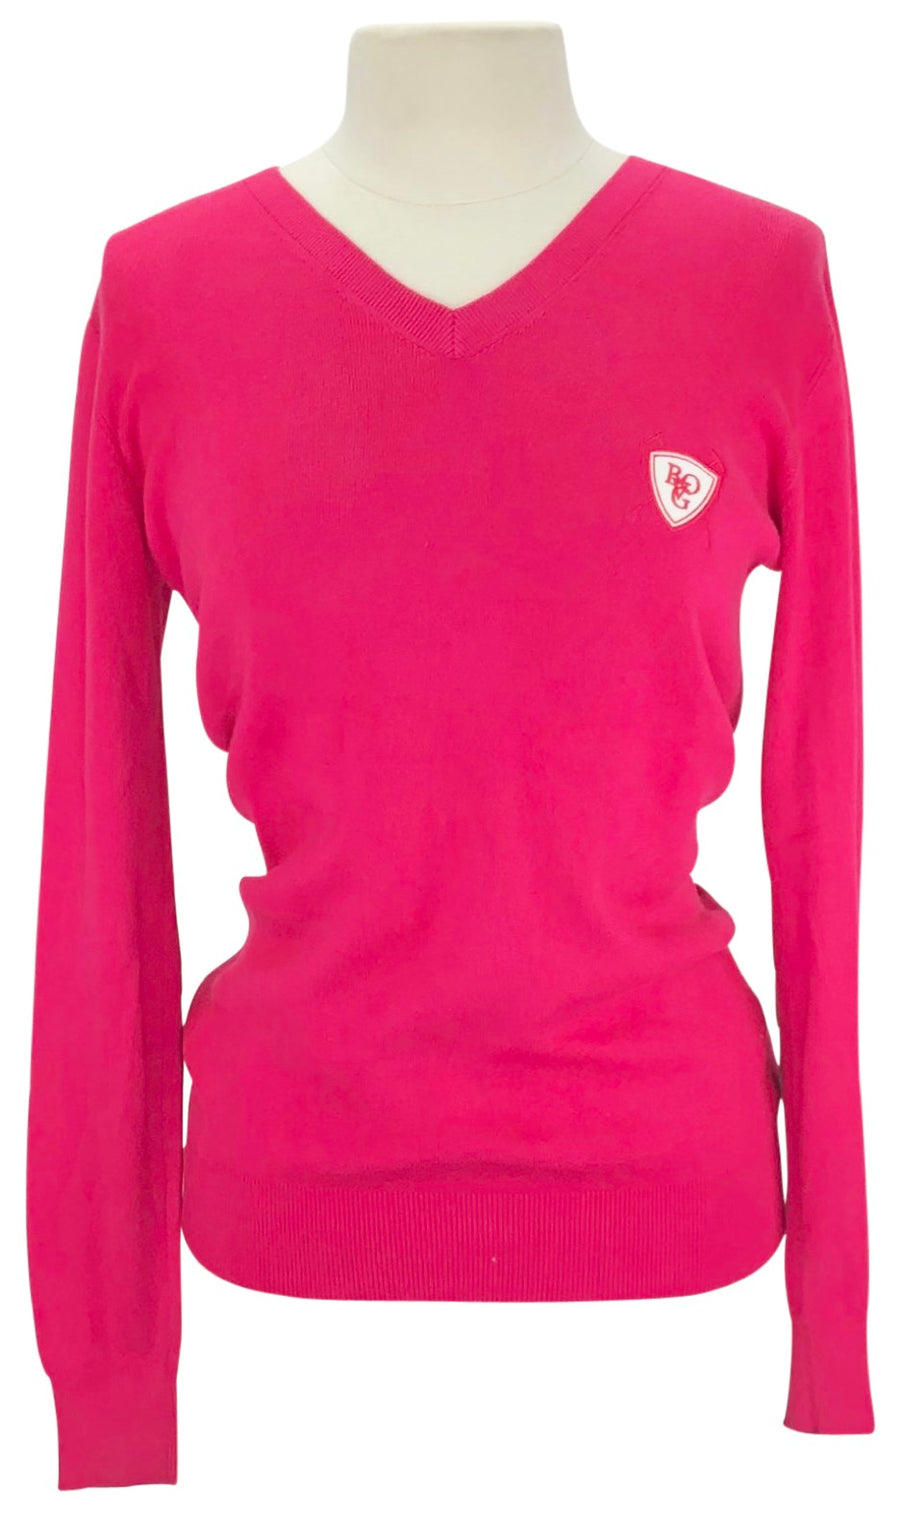 B Vertigo Kate Ladies Sweater in Pink